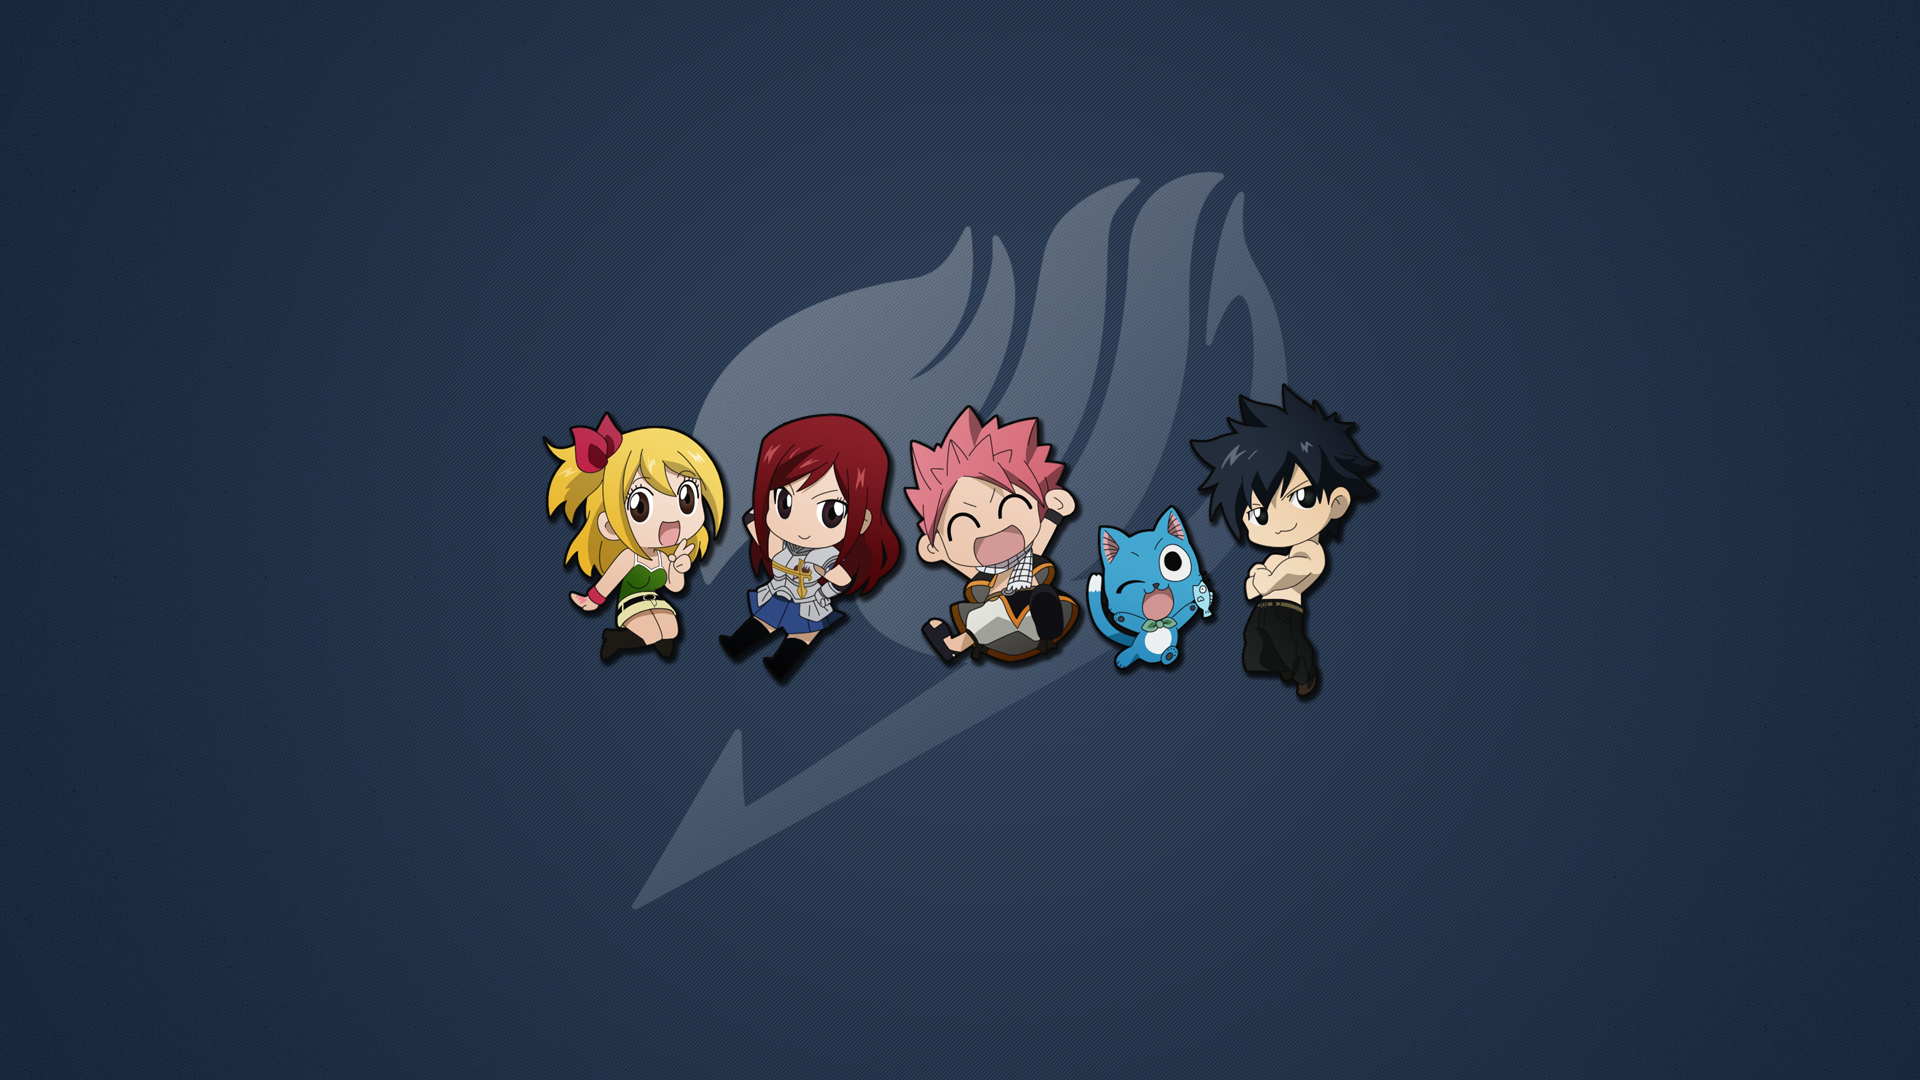 Natsu 3d Wallpapers Fairy Tail Wallpaper Pc Computer 5937 Wallpaper